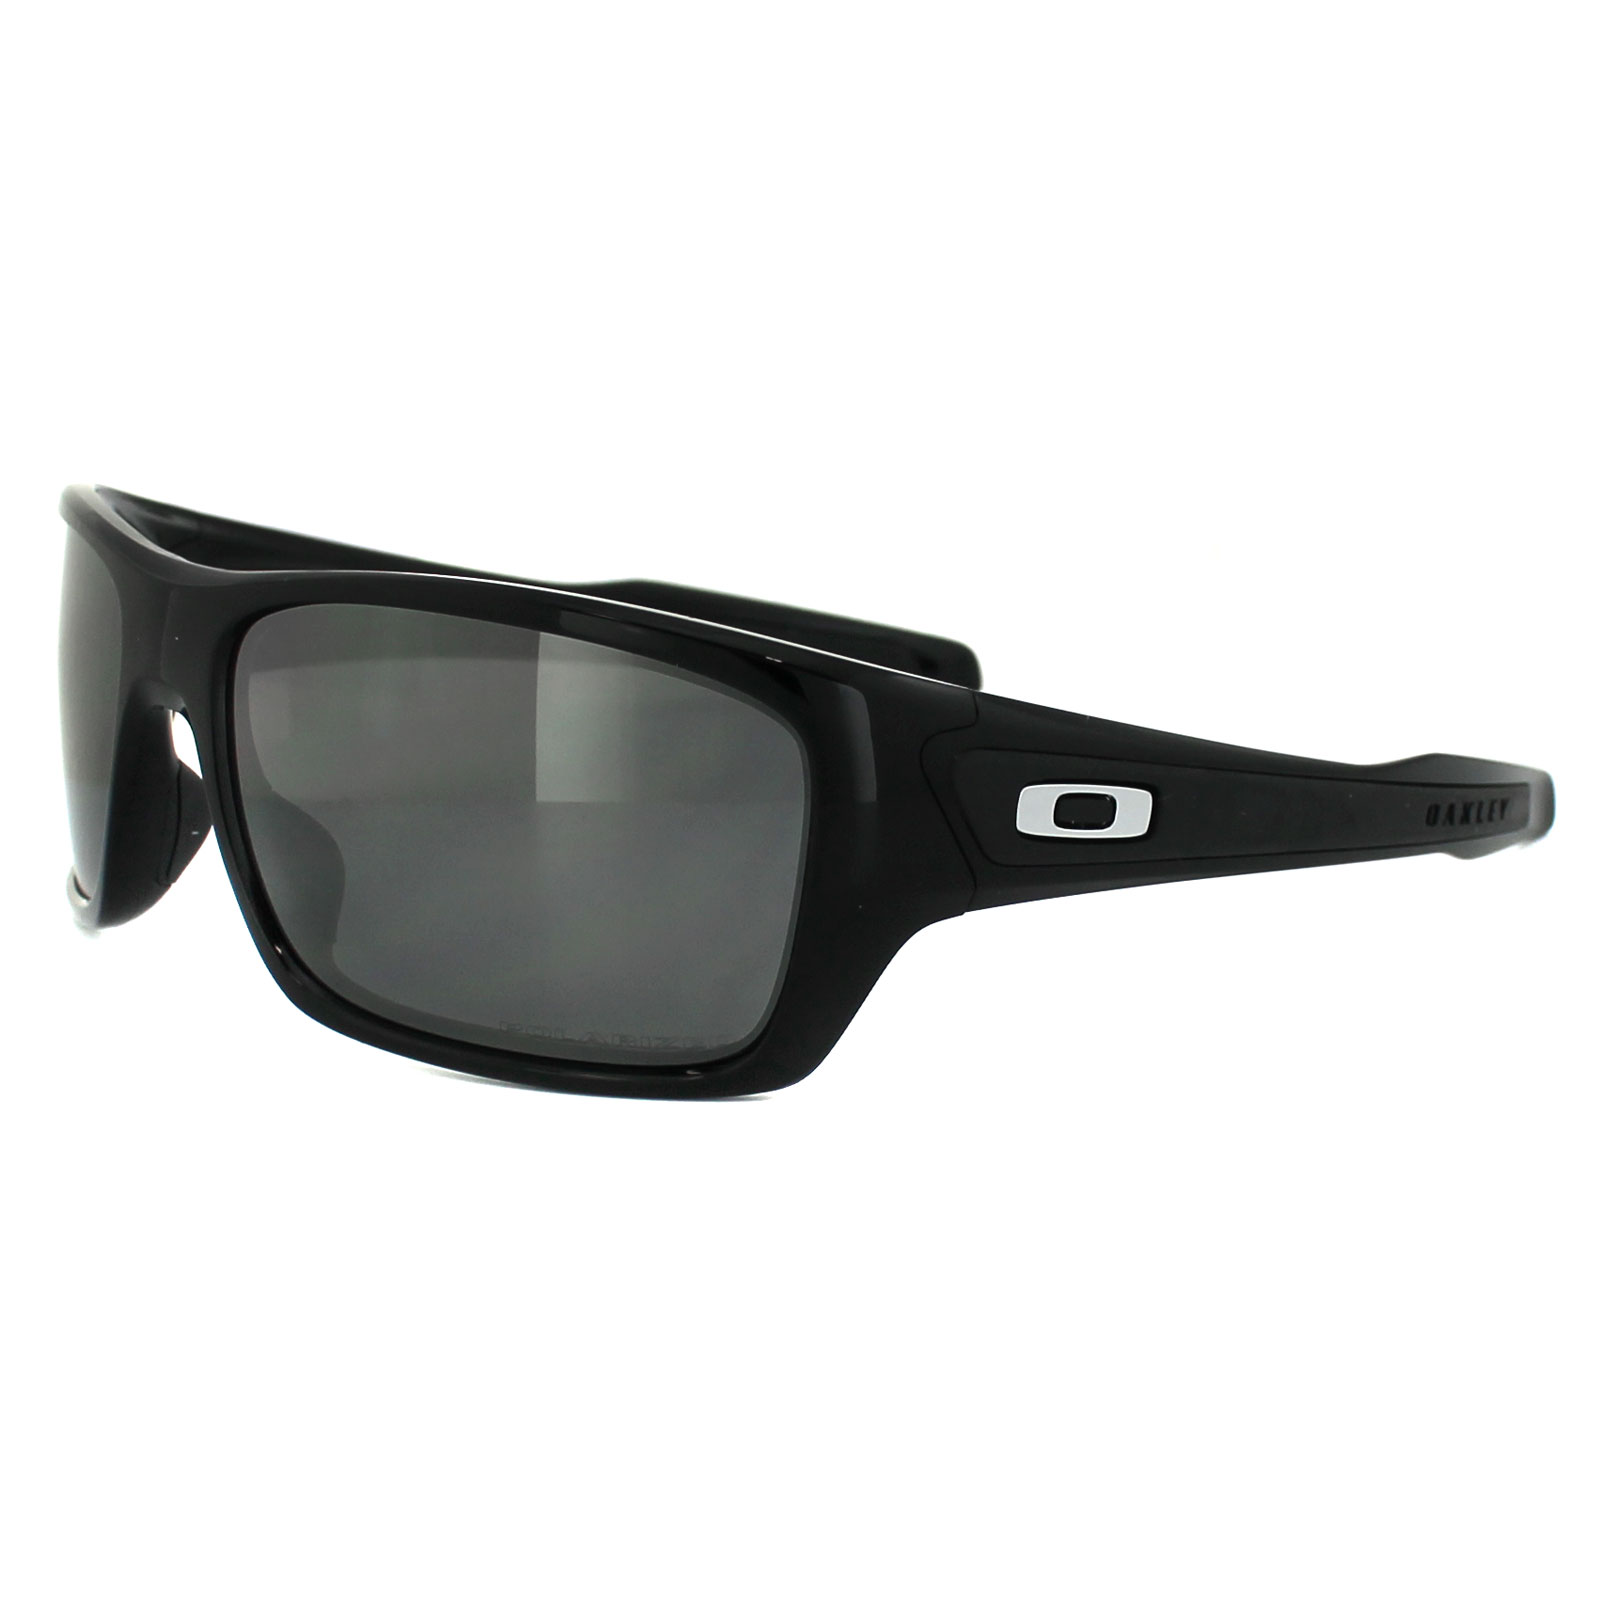 de8699808ad35 Sentinel Oakley Sunglasses Turbine OO9263-08 Polished Black Black Iridium  Polarized